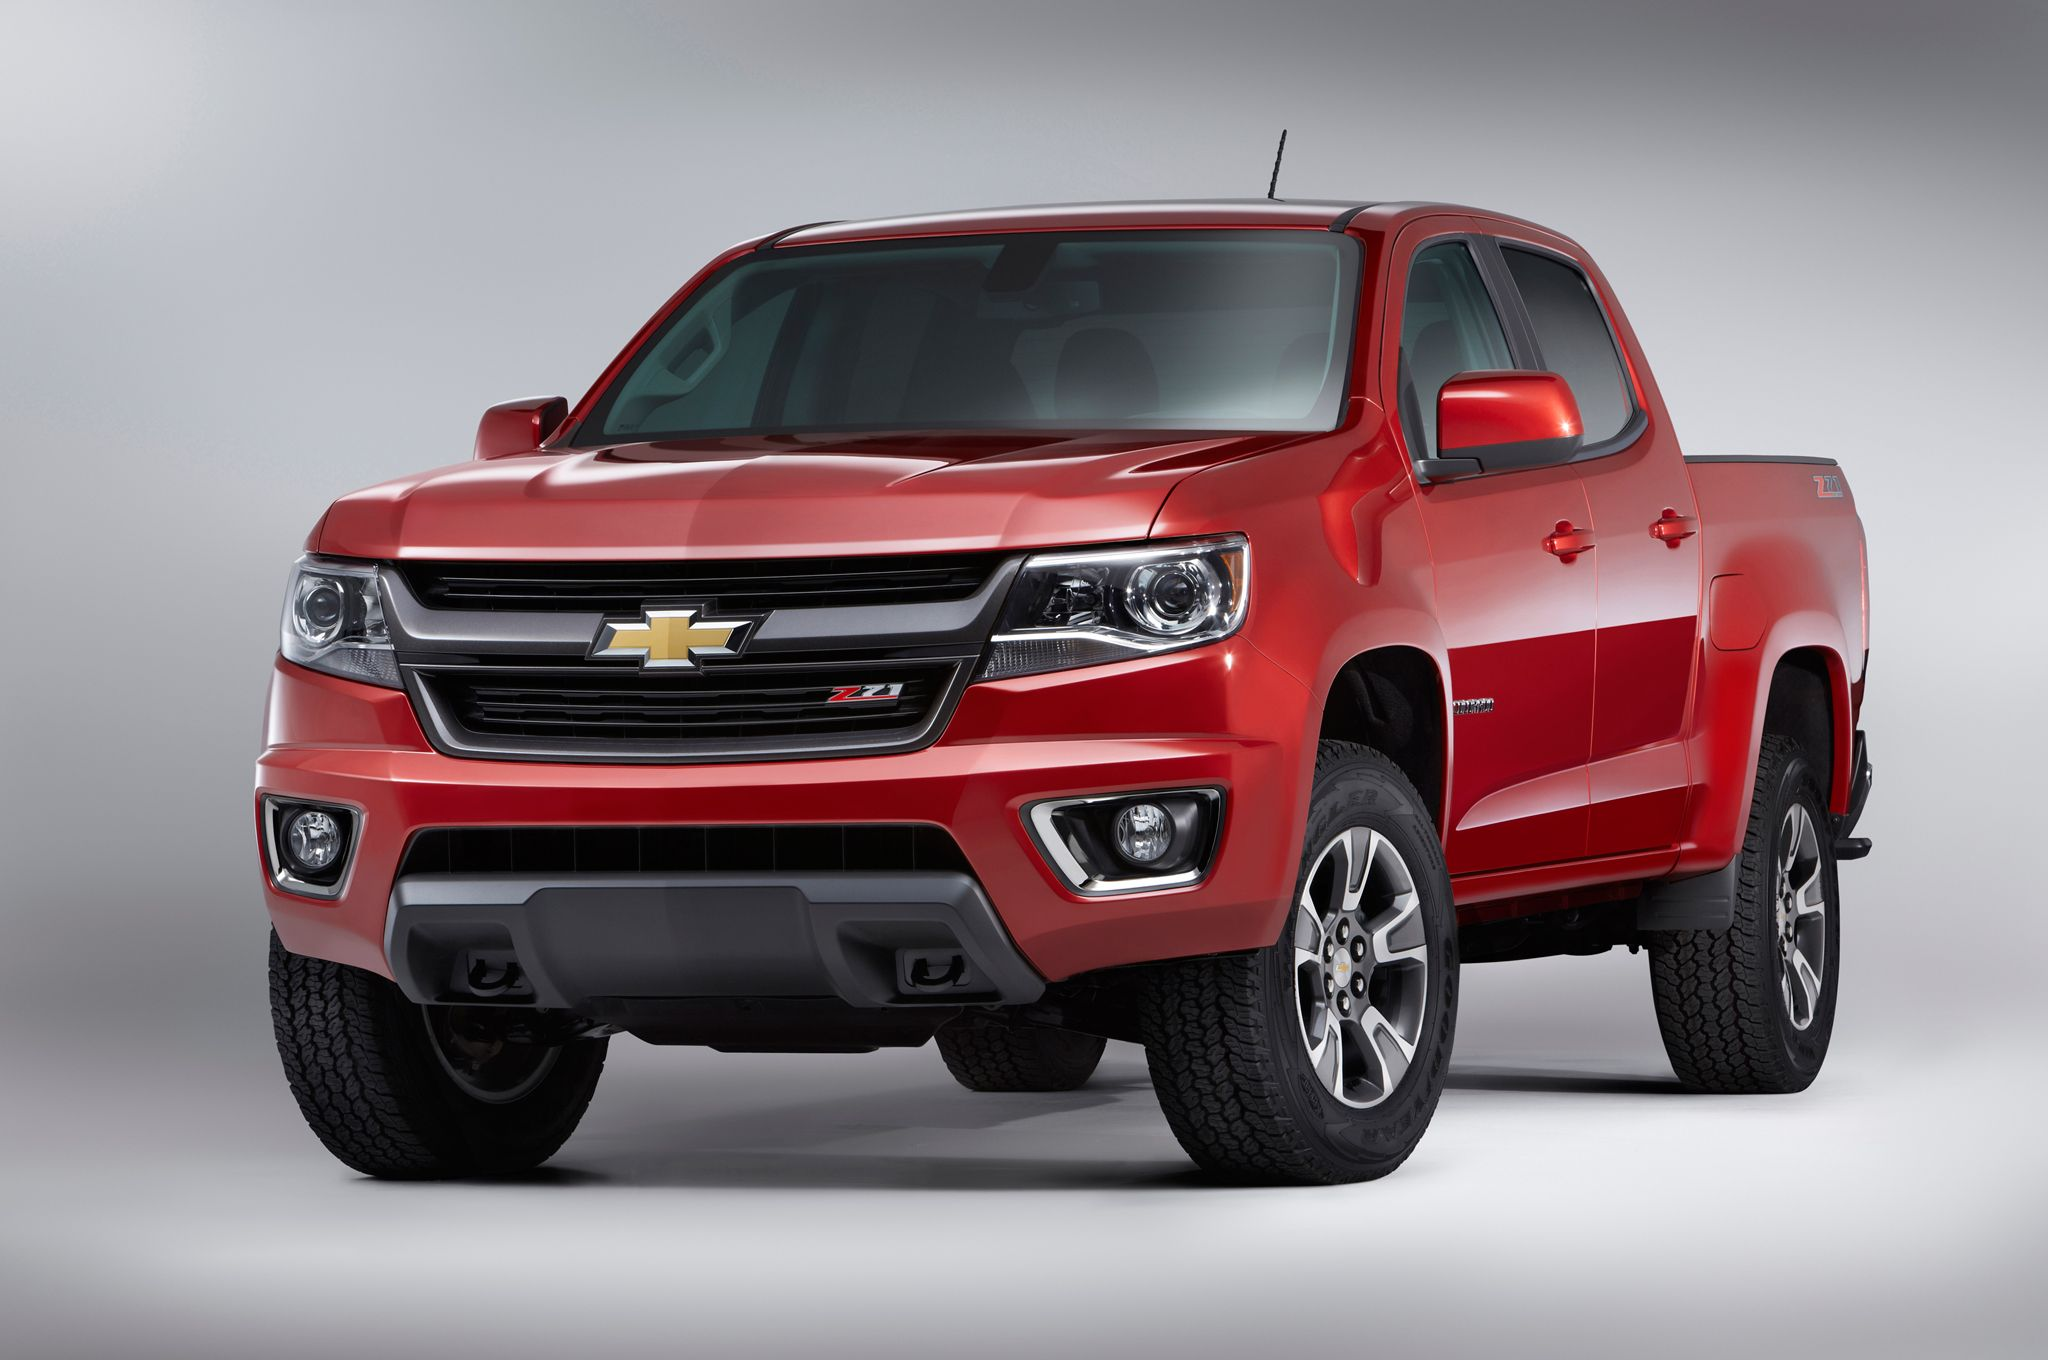 Just bought a 2016 chevy colorado lt chevrolet colorado pinterest 2015 canyon chevrolet colorado and chevy